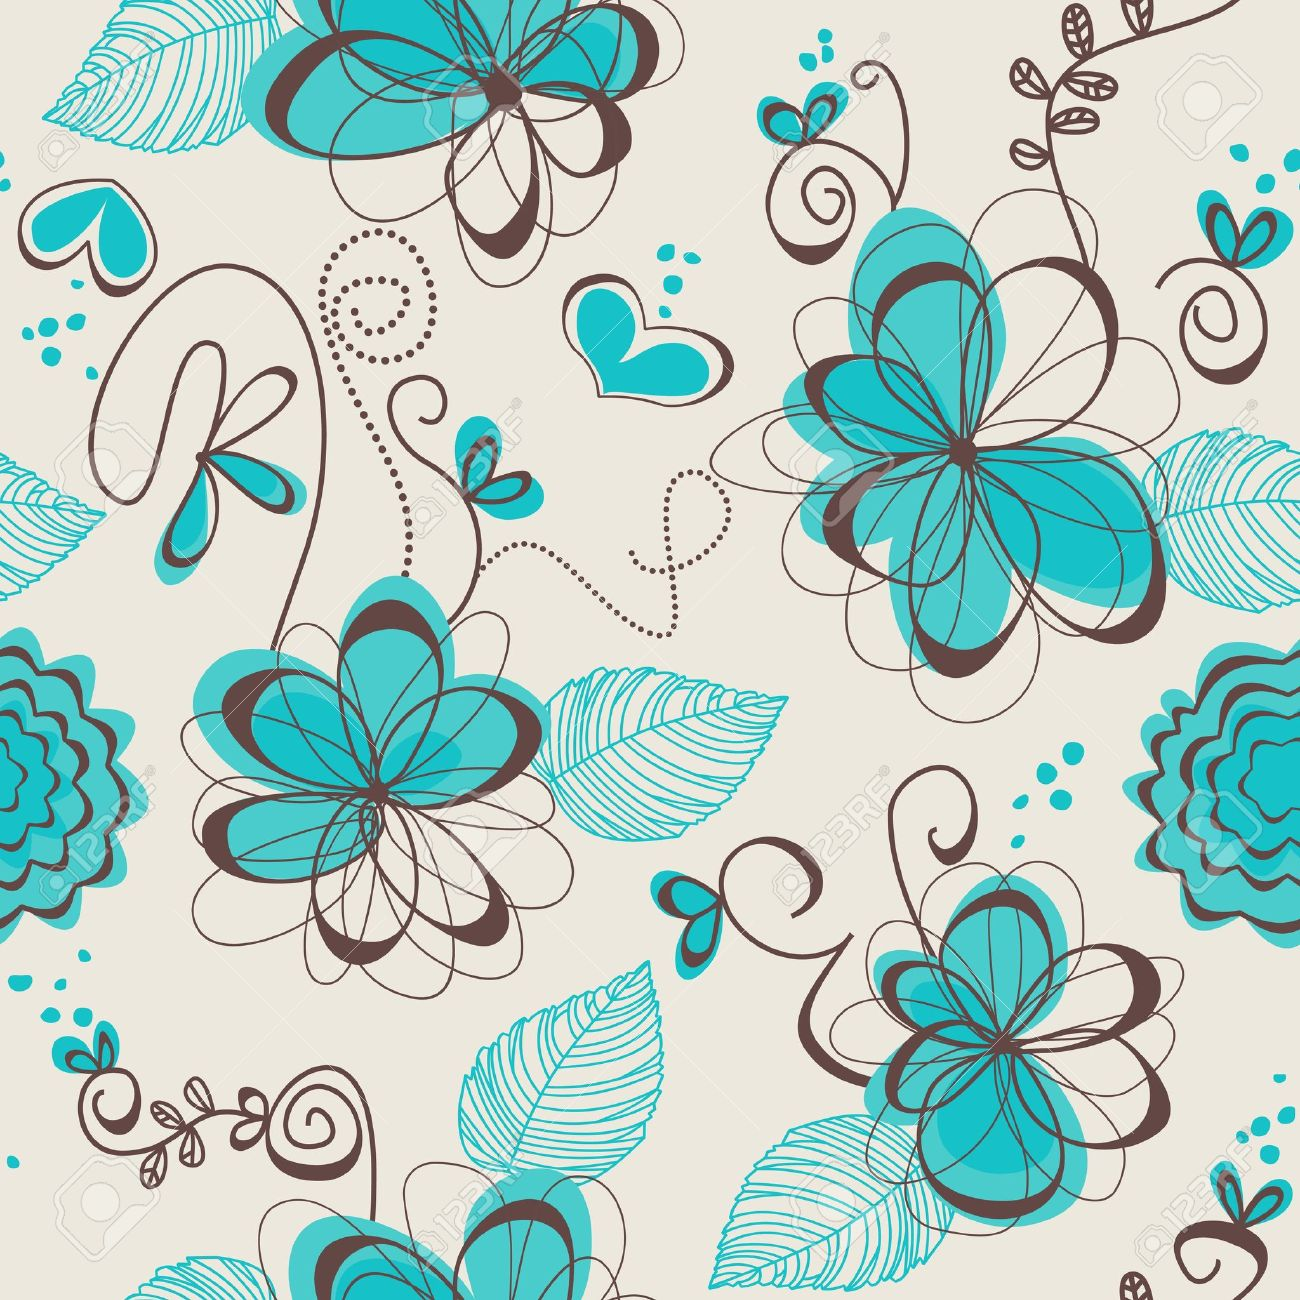 Turquoise Vectors Photos and PSD files Free Download